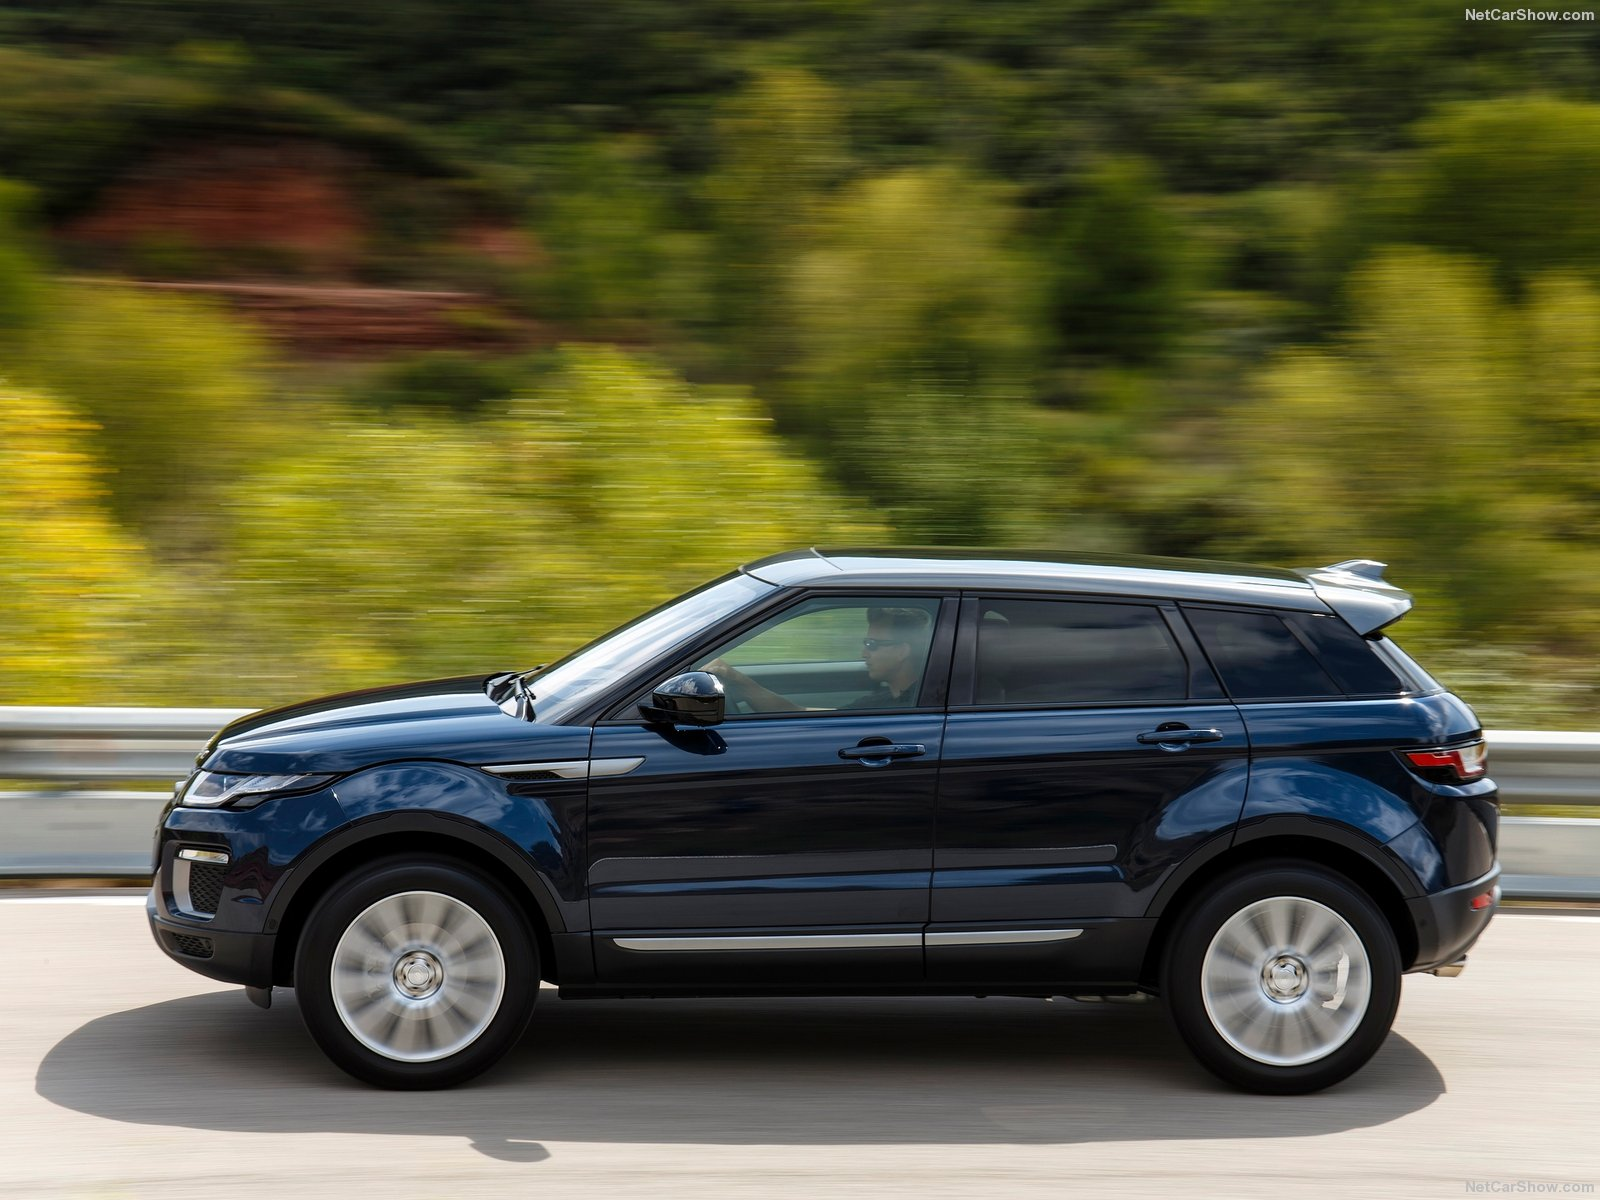 Land Rover Range Rover Evoque photo 151108